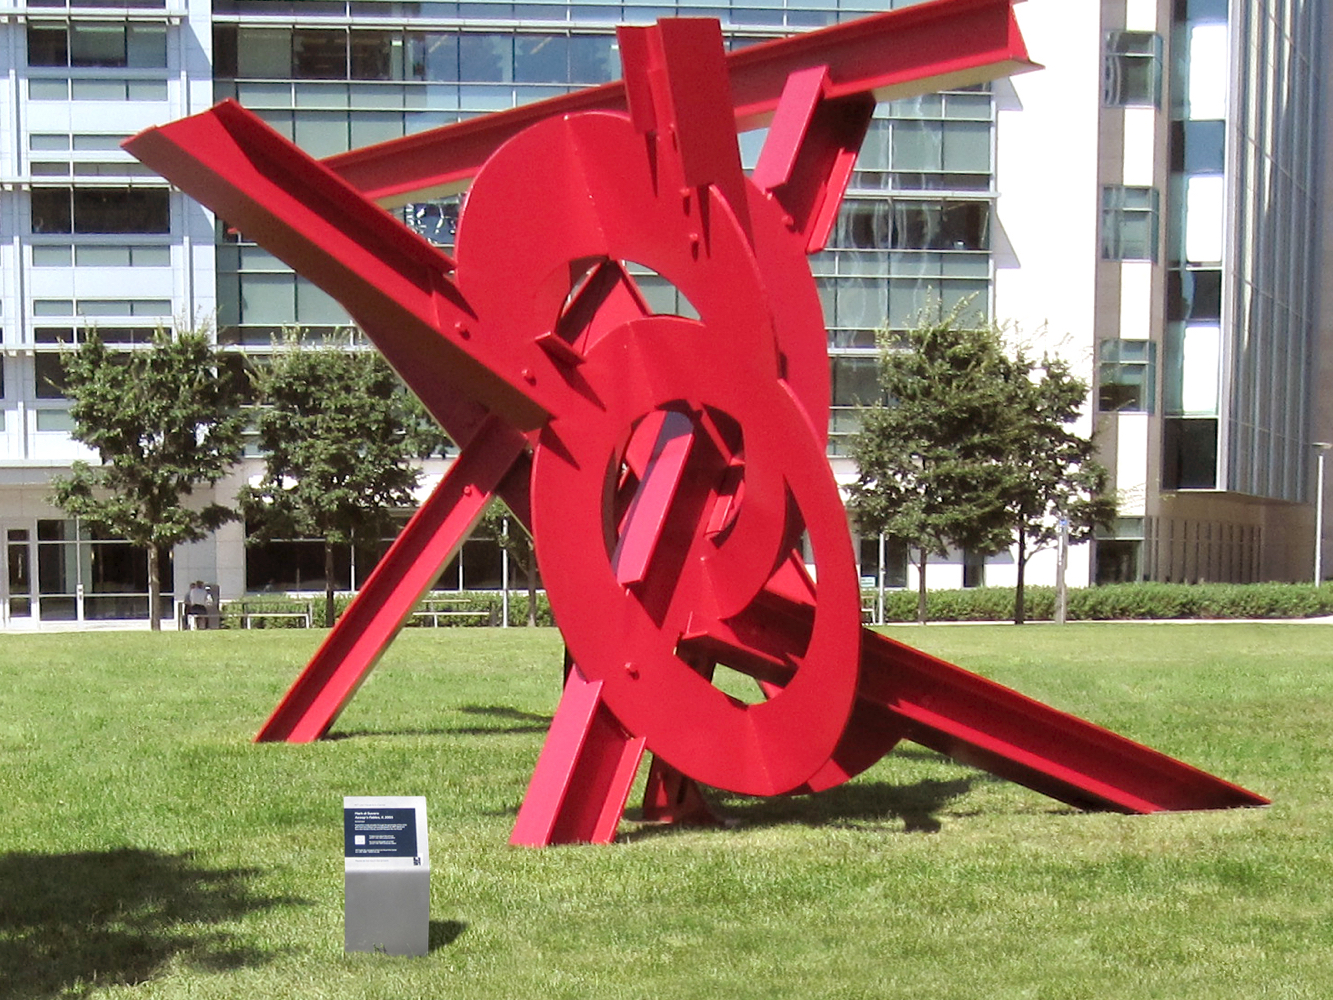 MIT List Visual Arts Center sculpture with branded signage